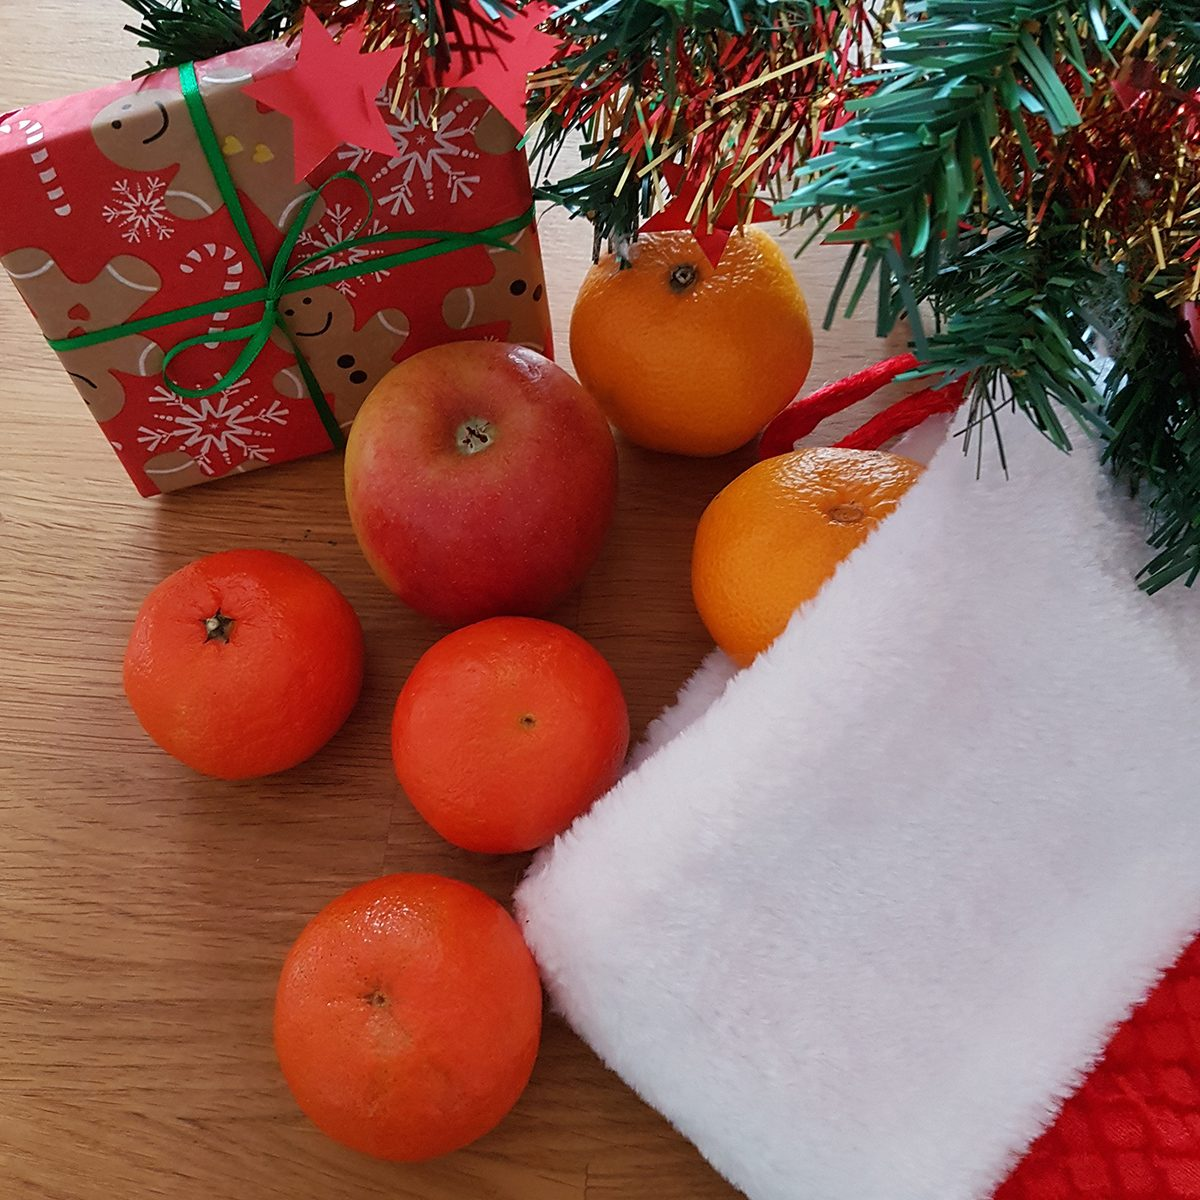 Christmas Stocking filled with fruit and gifts, Christmas decoration